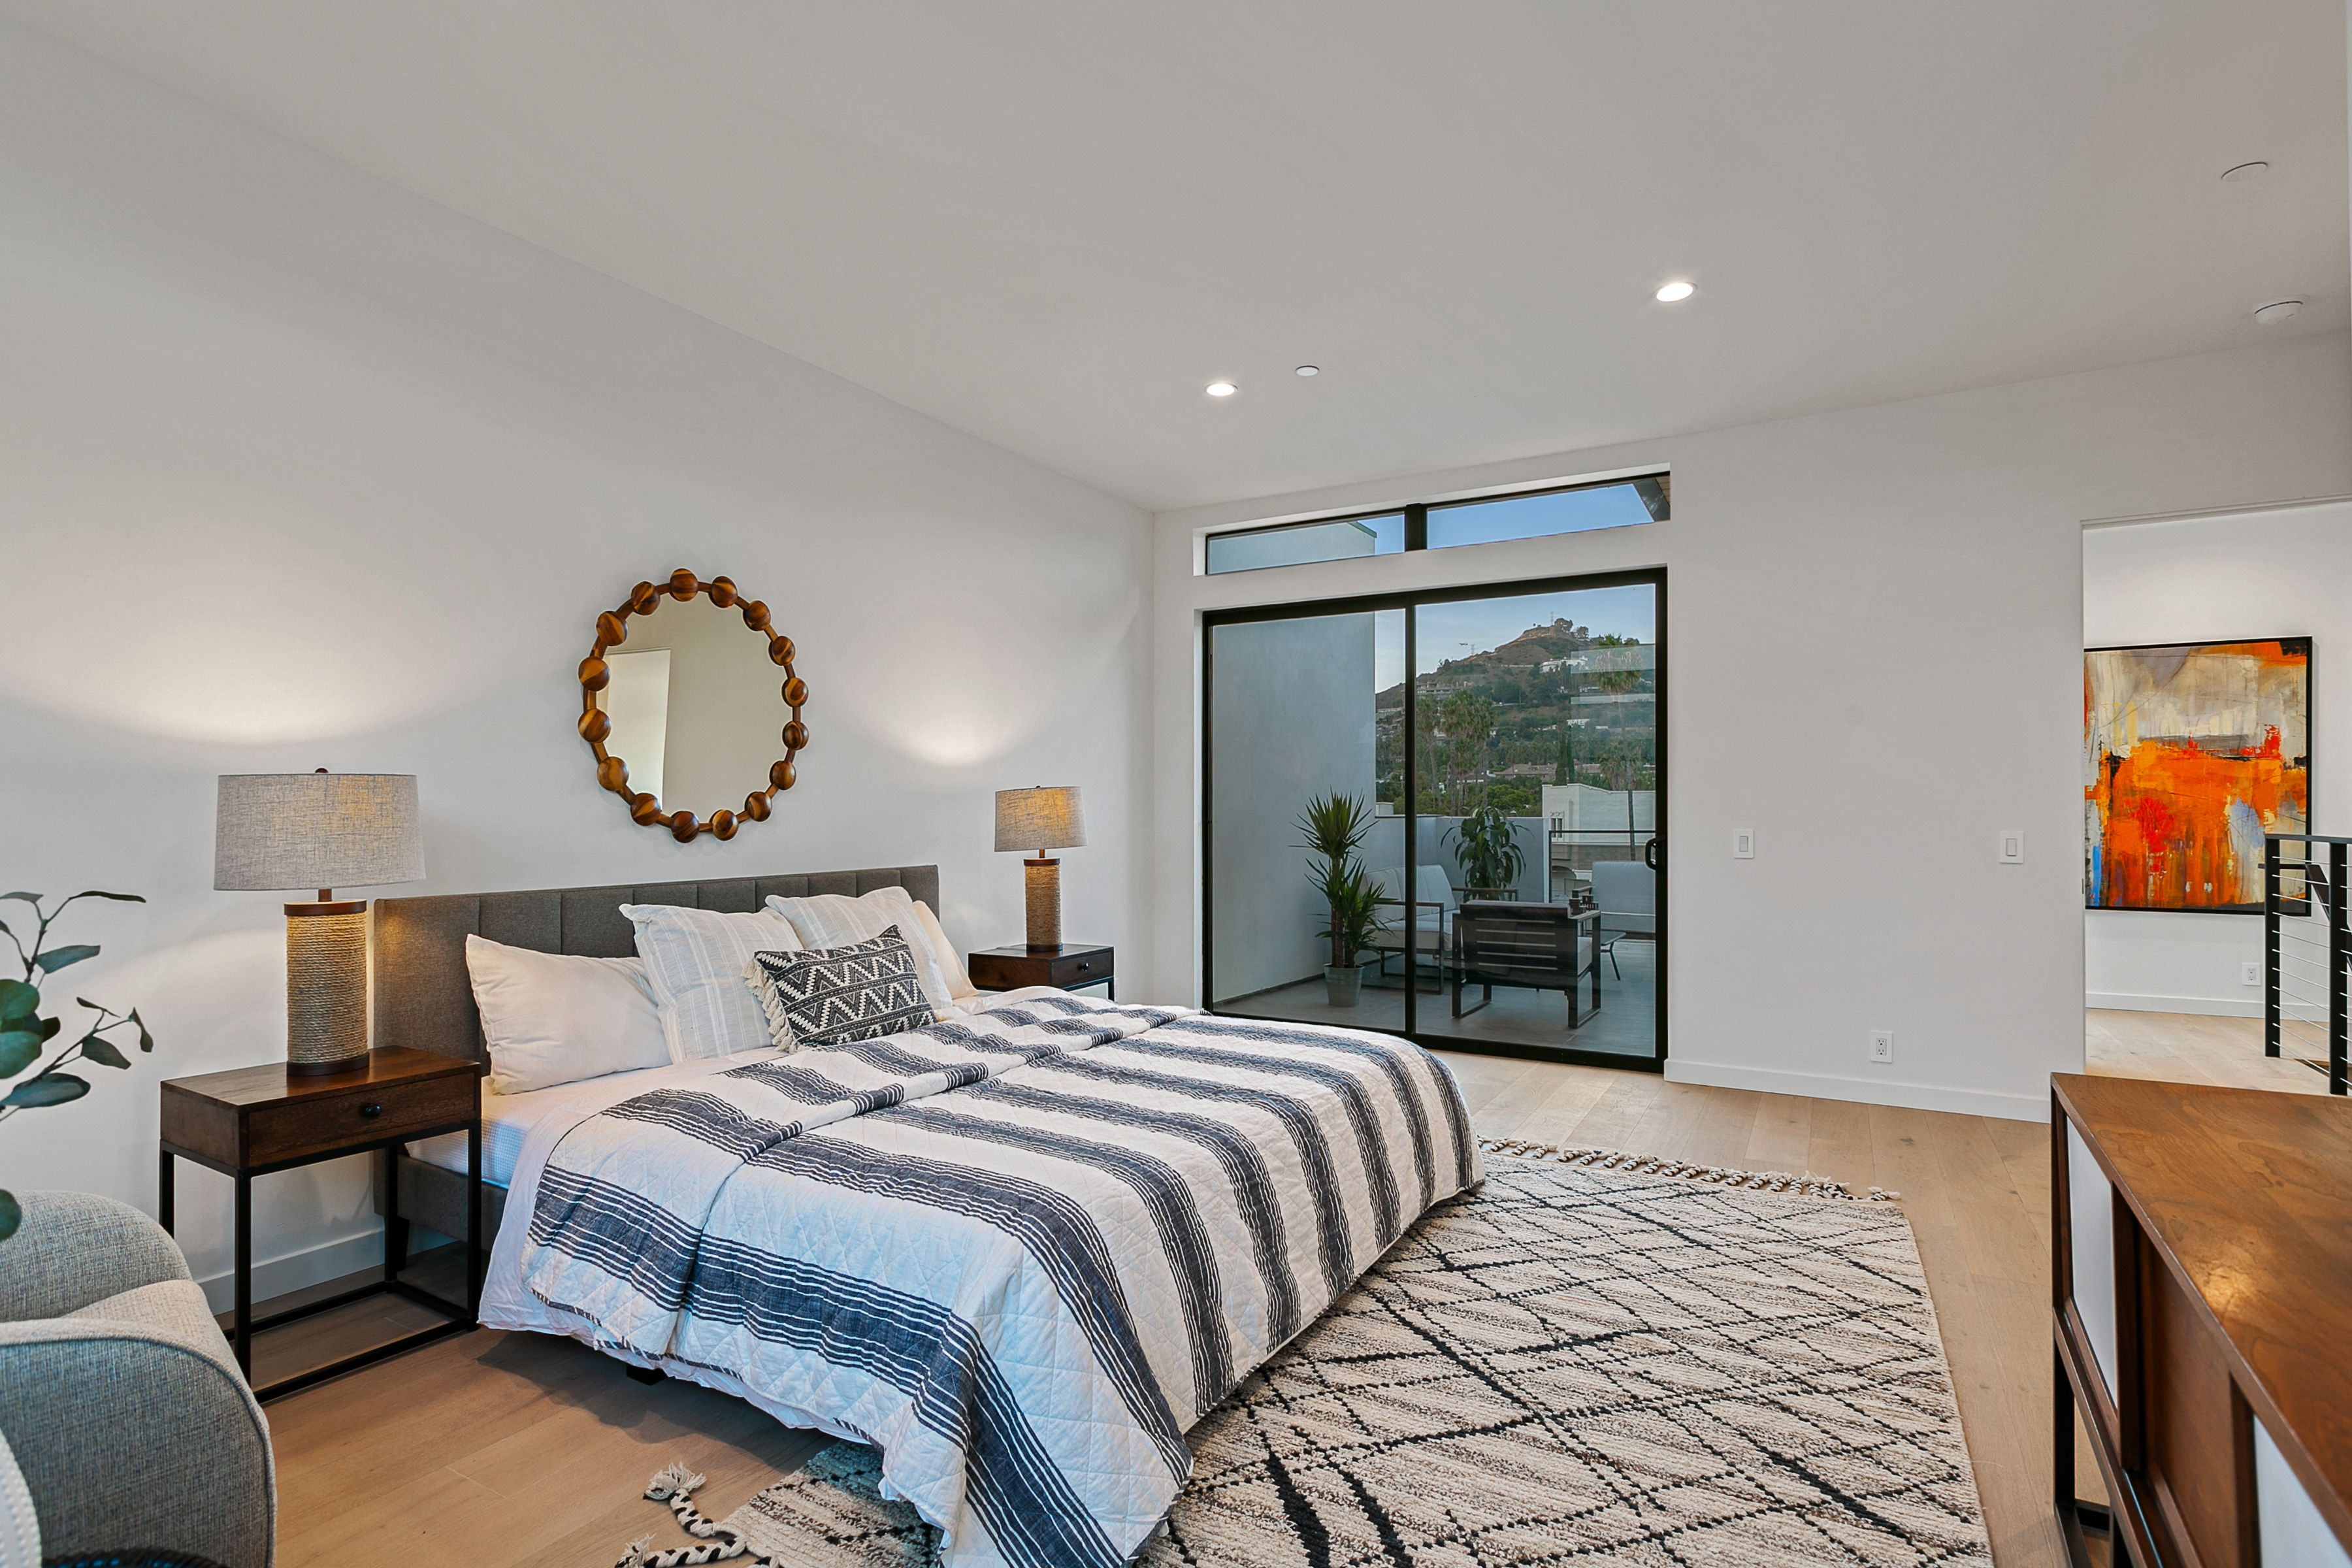 Bedroom featured in the Lot 4 By Skye Urban Home in Los Angeles, CA